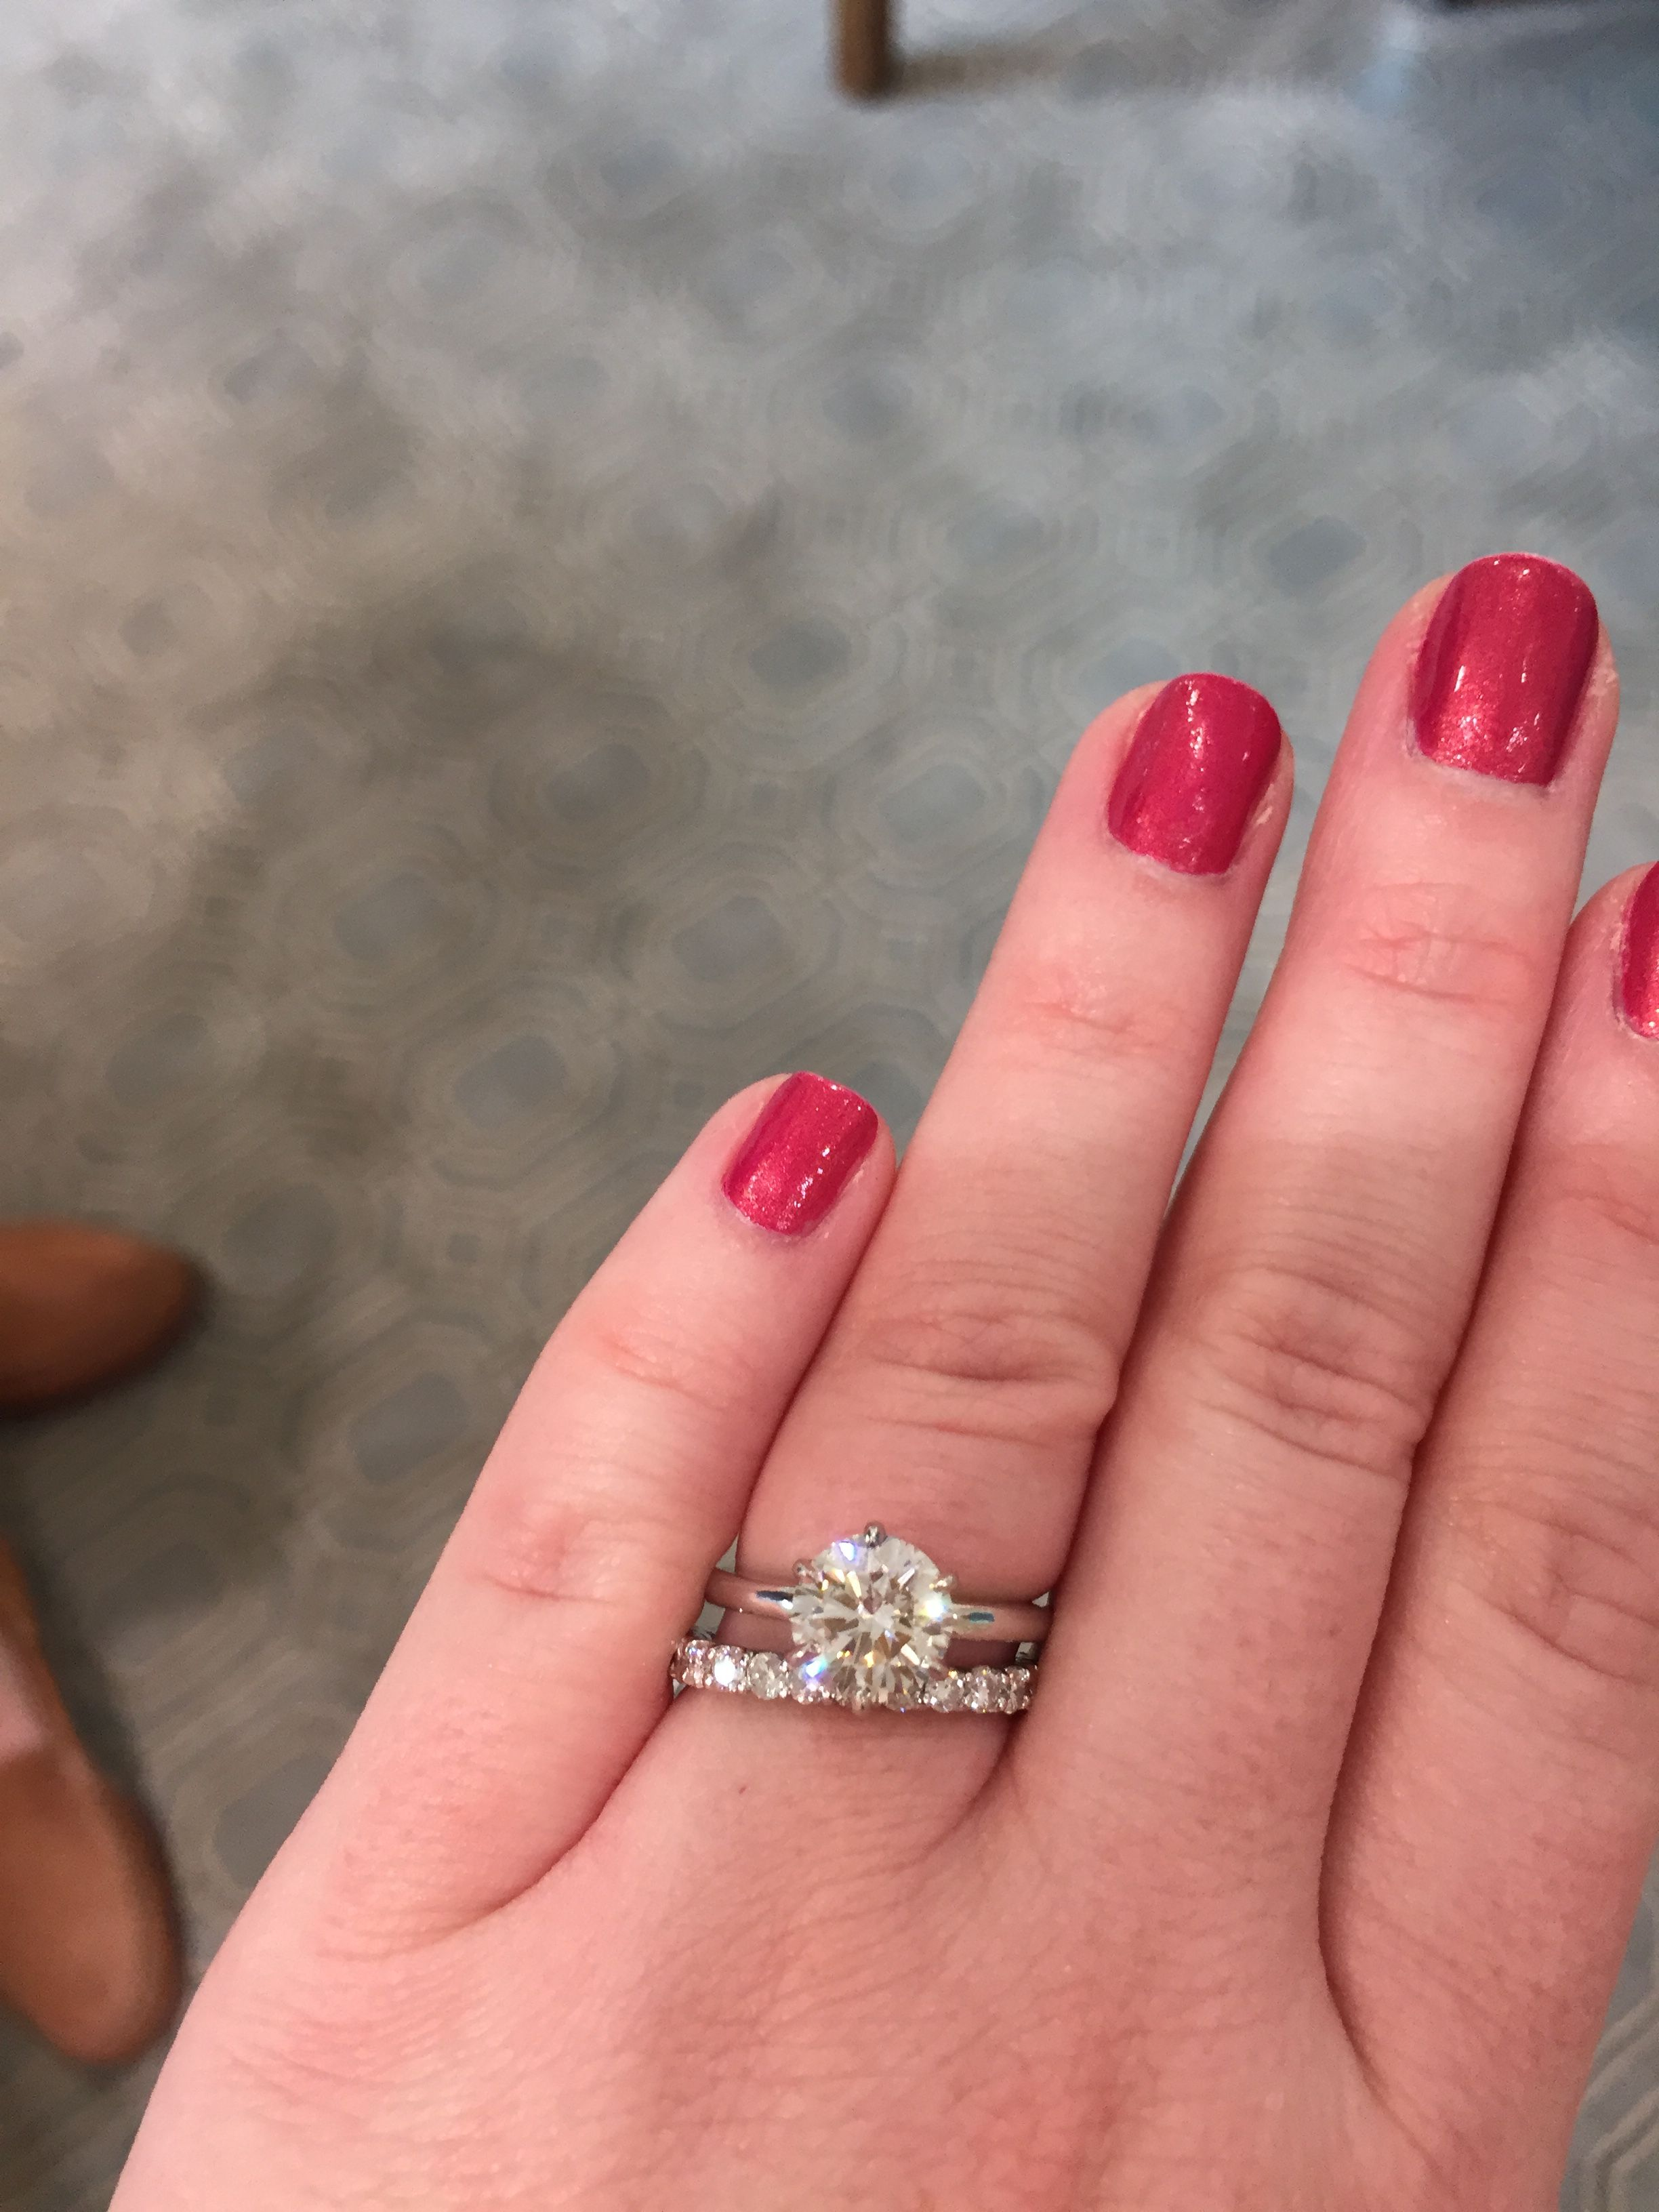 My wedding ring set! ❤ 2 carat solitaire engagement ring with an ...